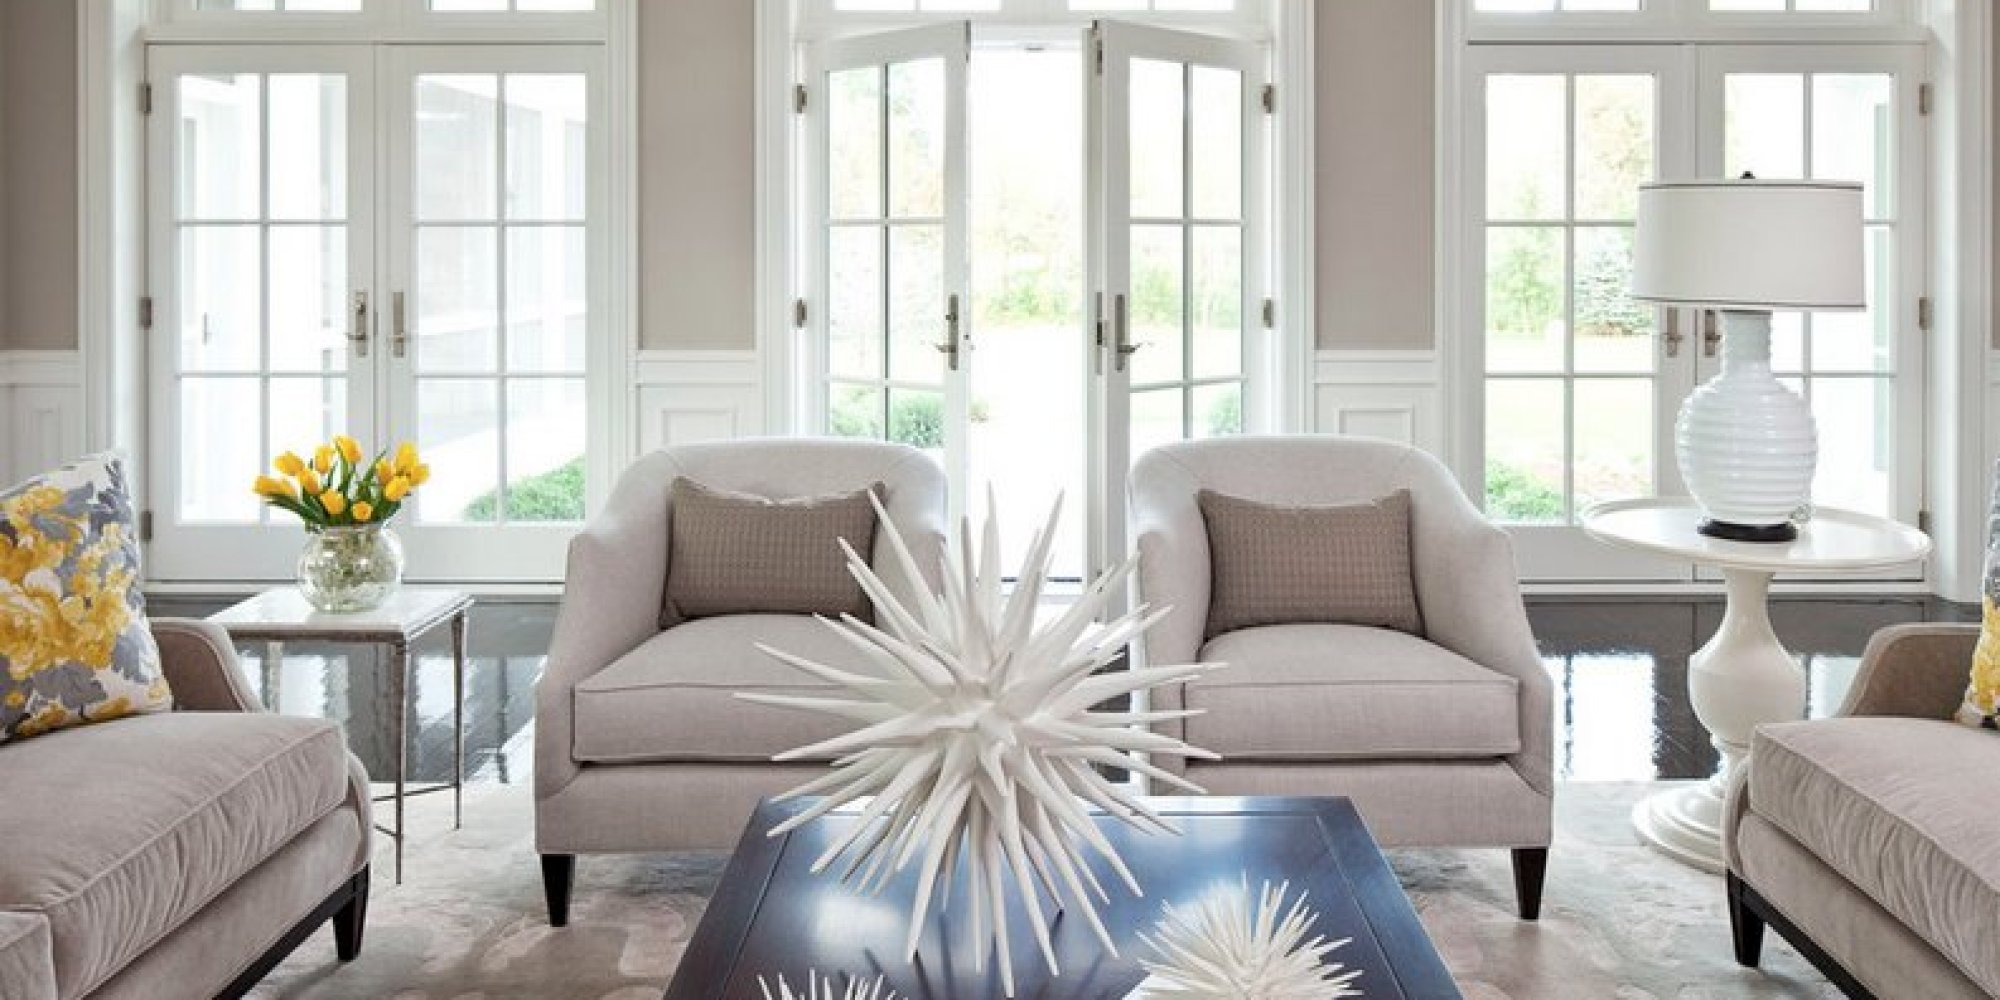 Popular interior paint colors - The 8 Best Neutral Paint Colors That Ll Work In Any Home No Matter The Style Photos Huffpost